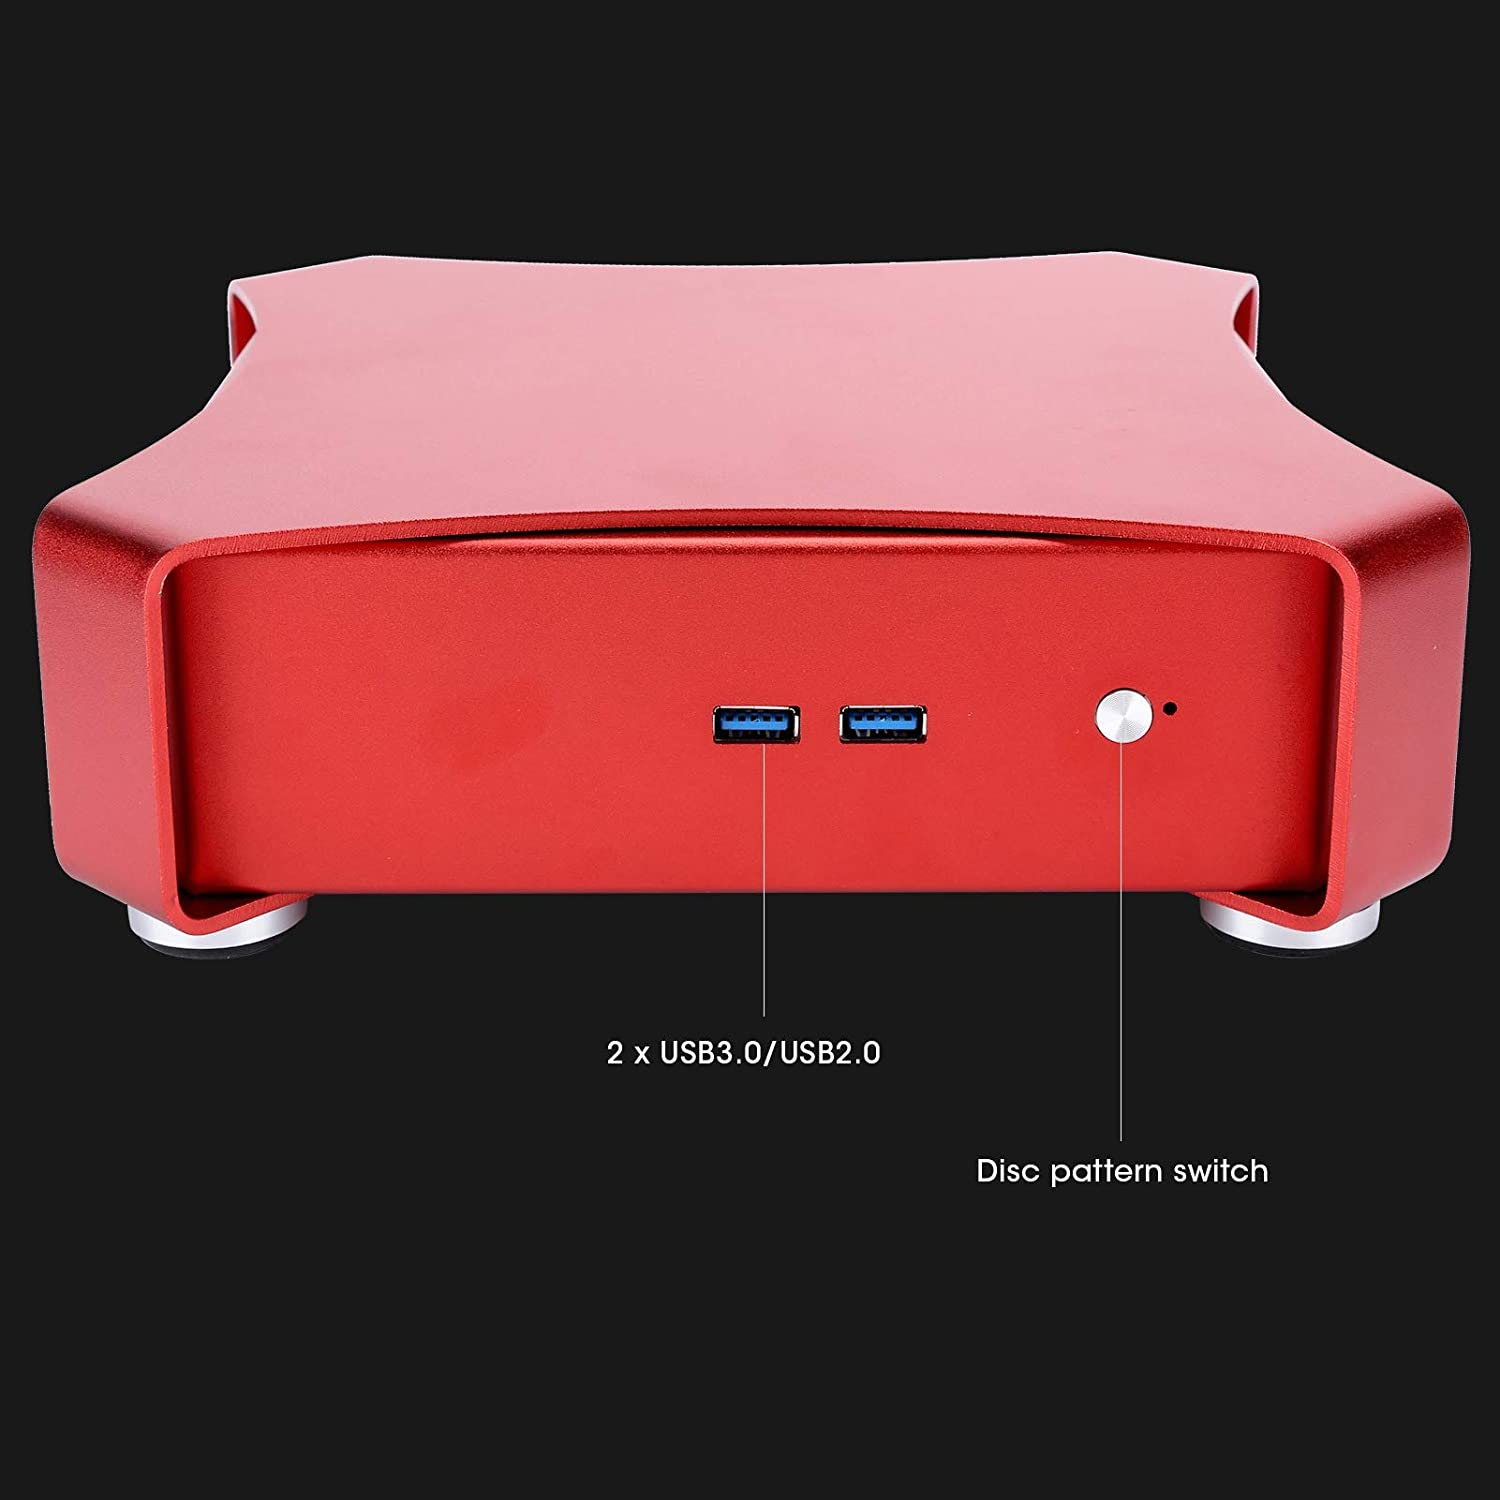 All Aluminum PC Case Stylish Mini HTPC Durable Manufacturer direct delivery C Beautiful Our shop OFFers the best service